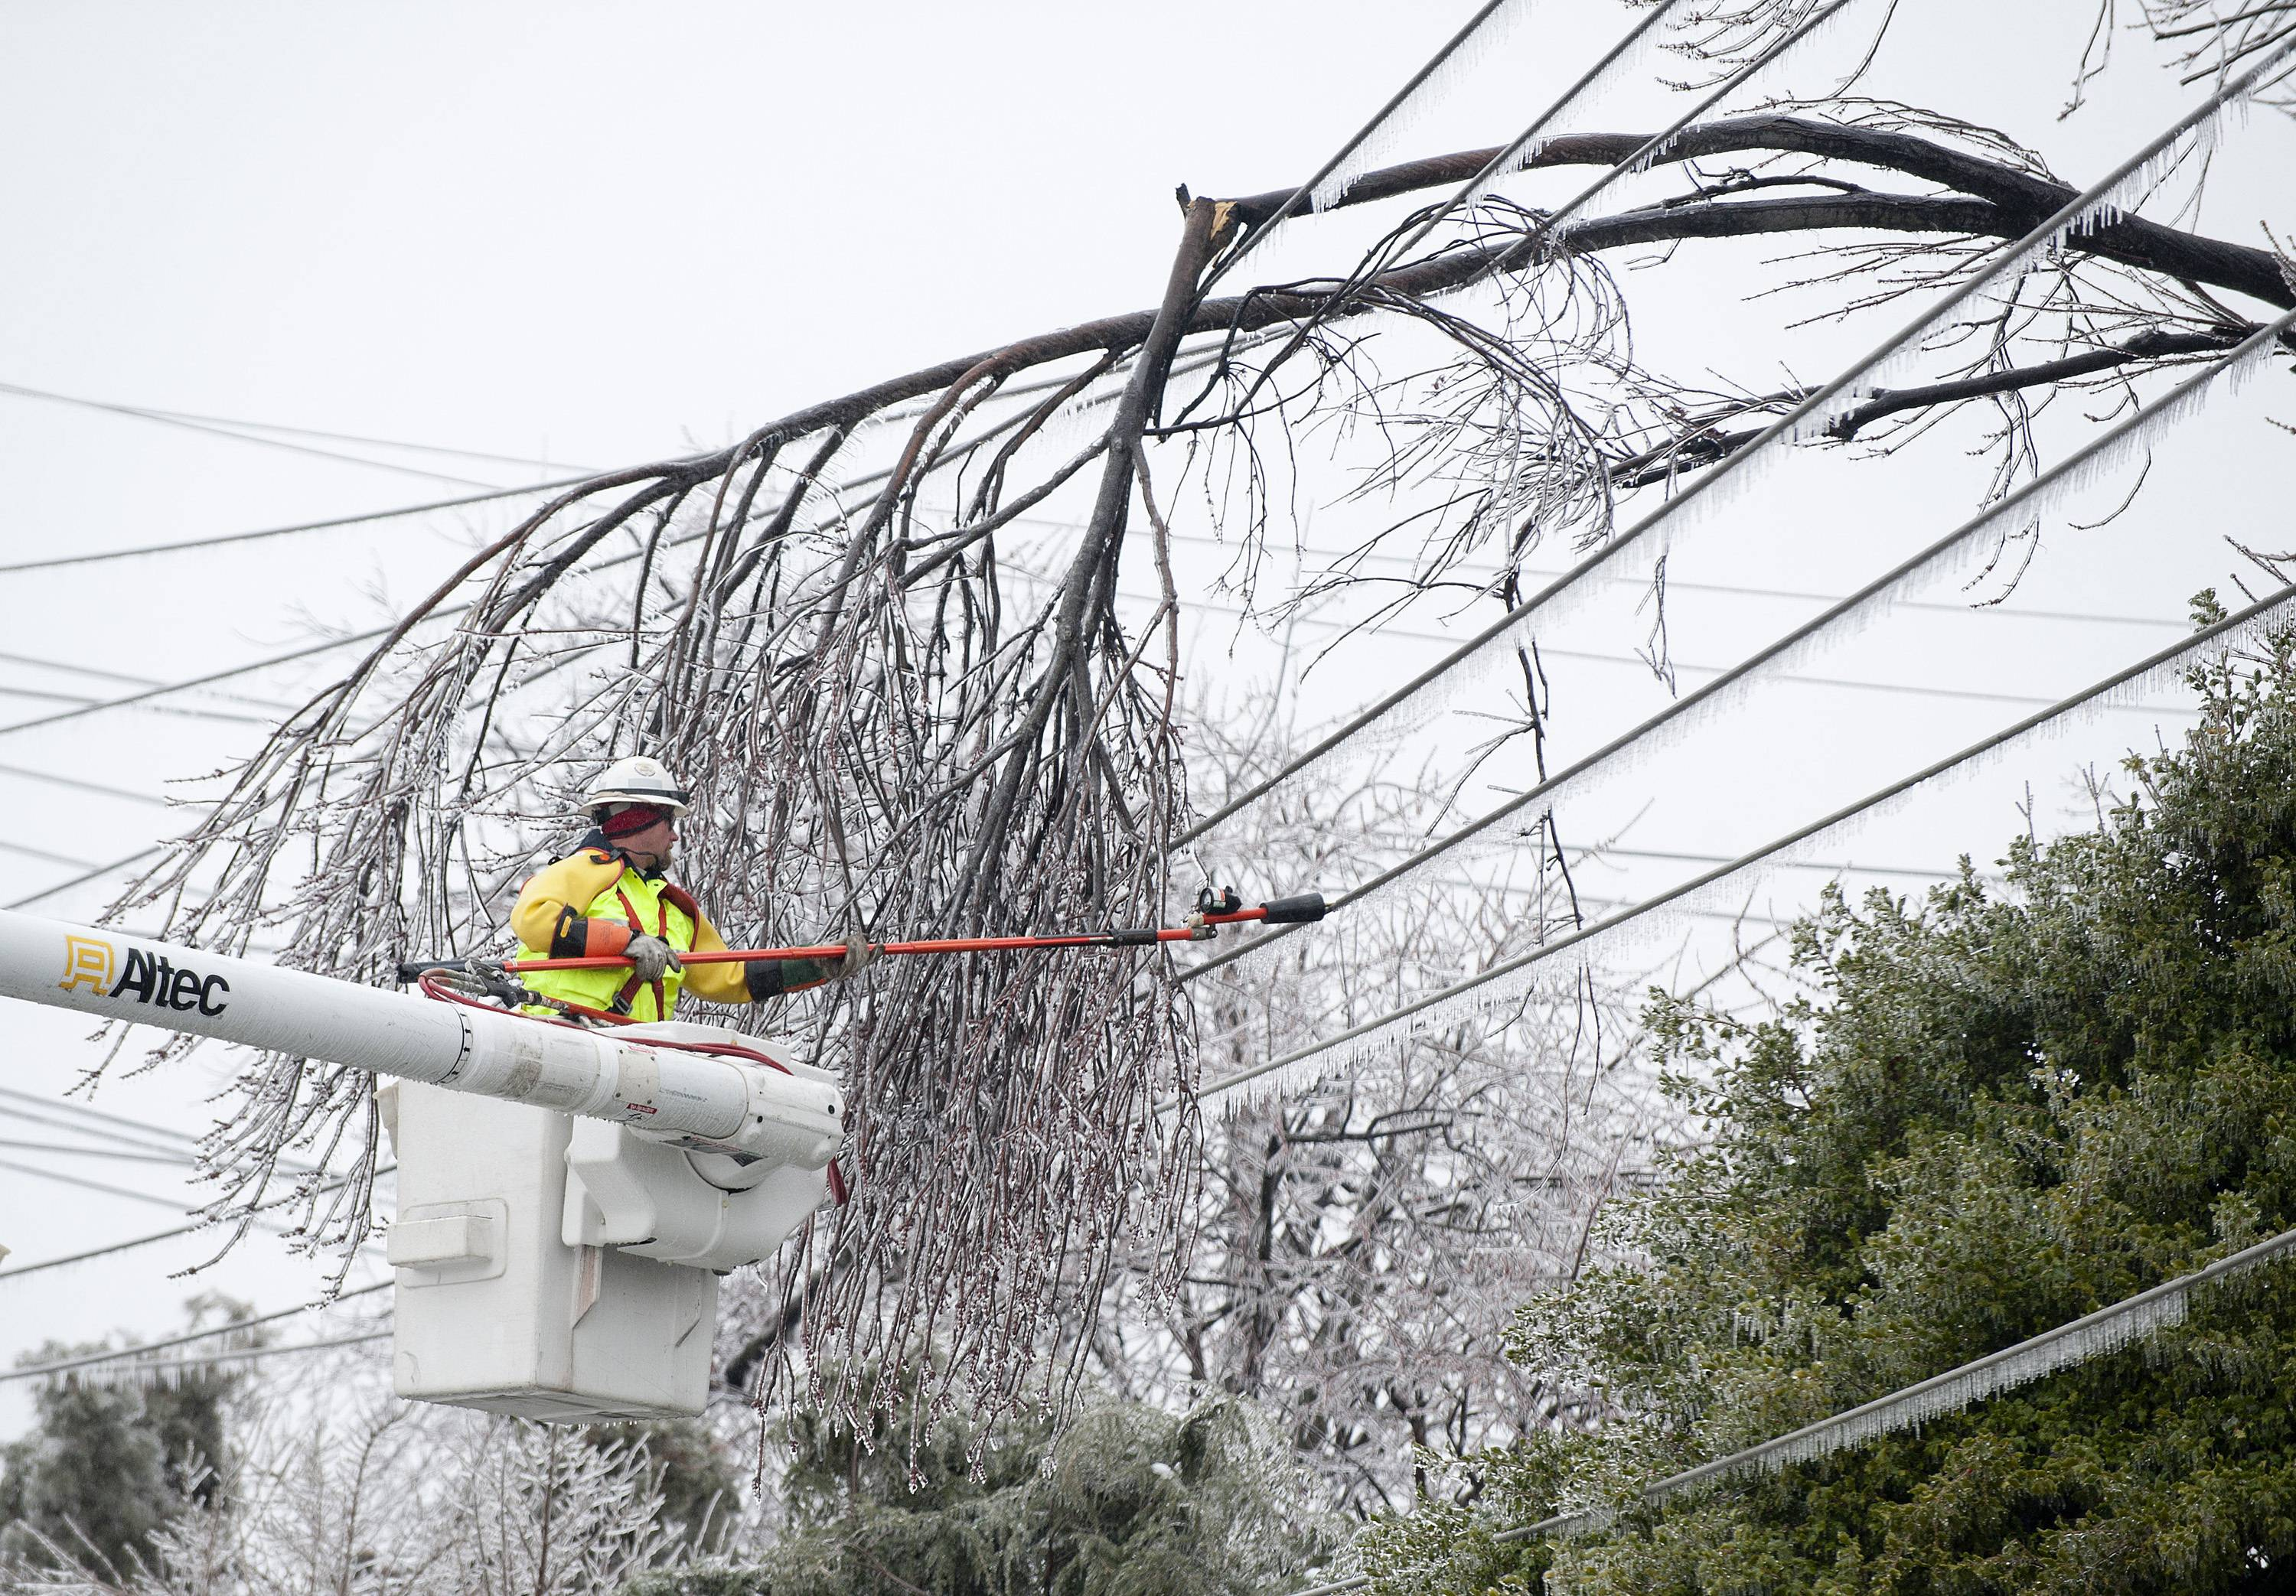 A Potomac Edison worker begins to remove a number of fallen branches from a high voltage line along Rosemont Avenue, Wednesday, Feb. 5, 2014, in Frederick, Md. Many area homes and traffic lights were without power.